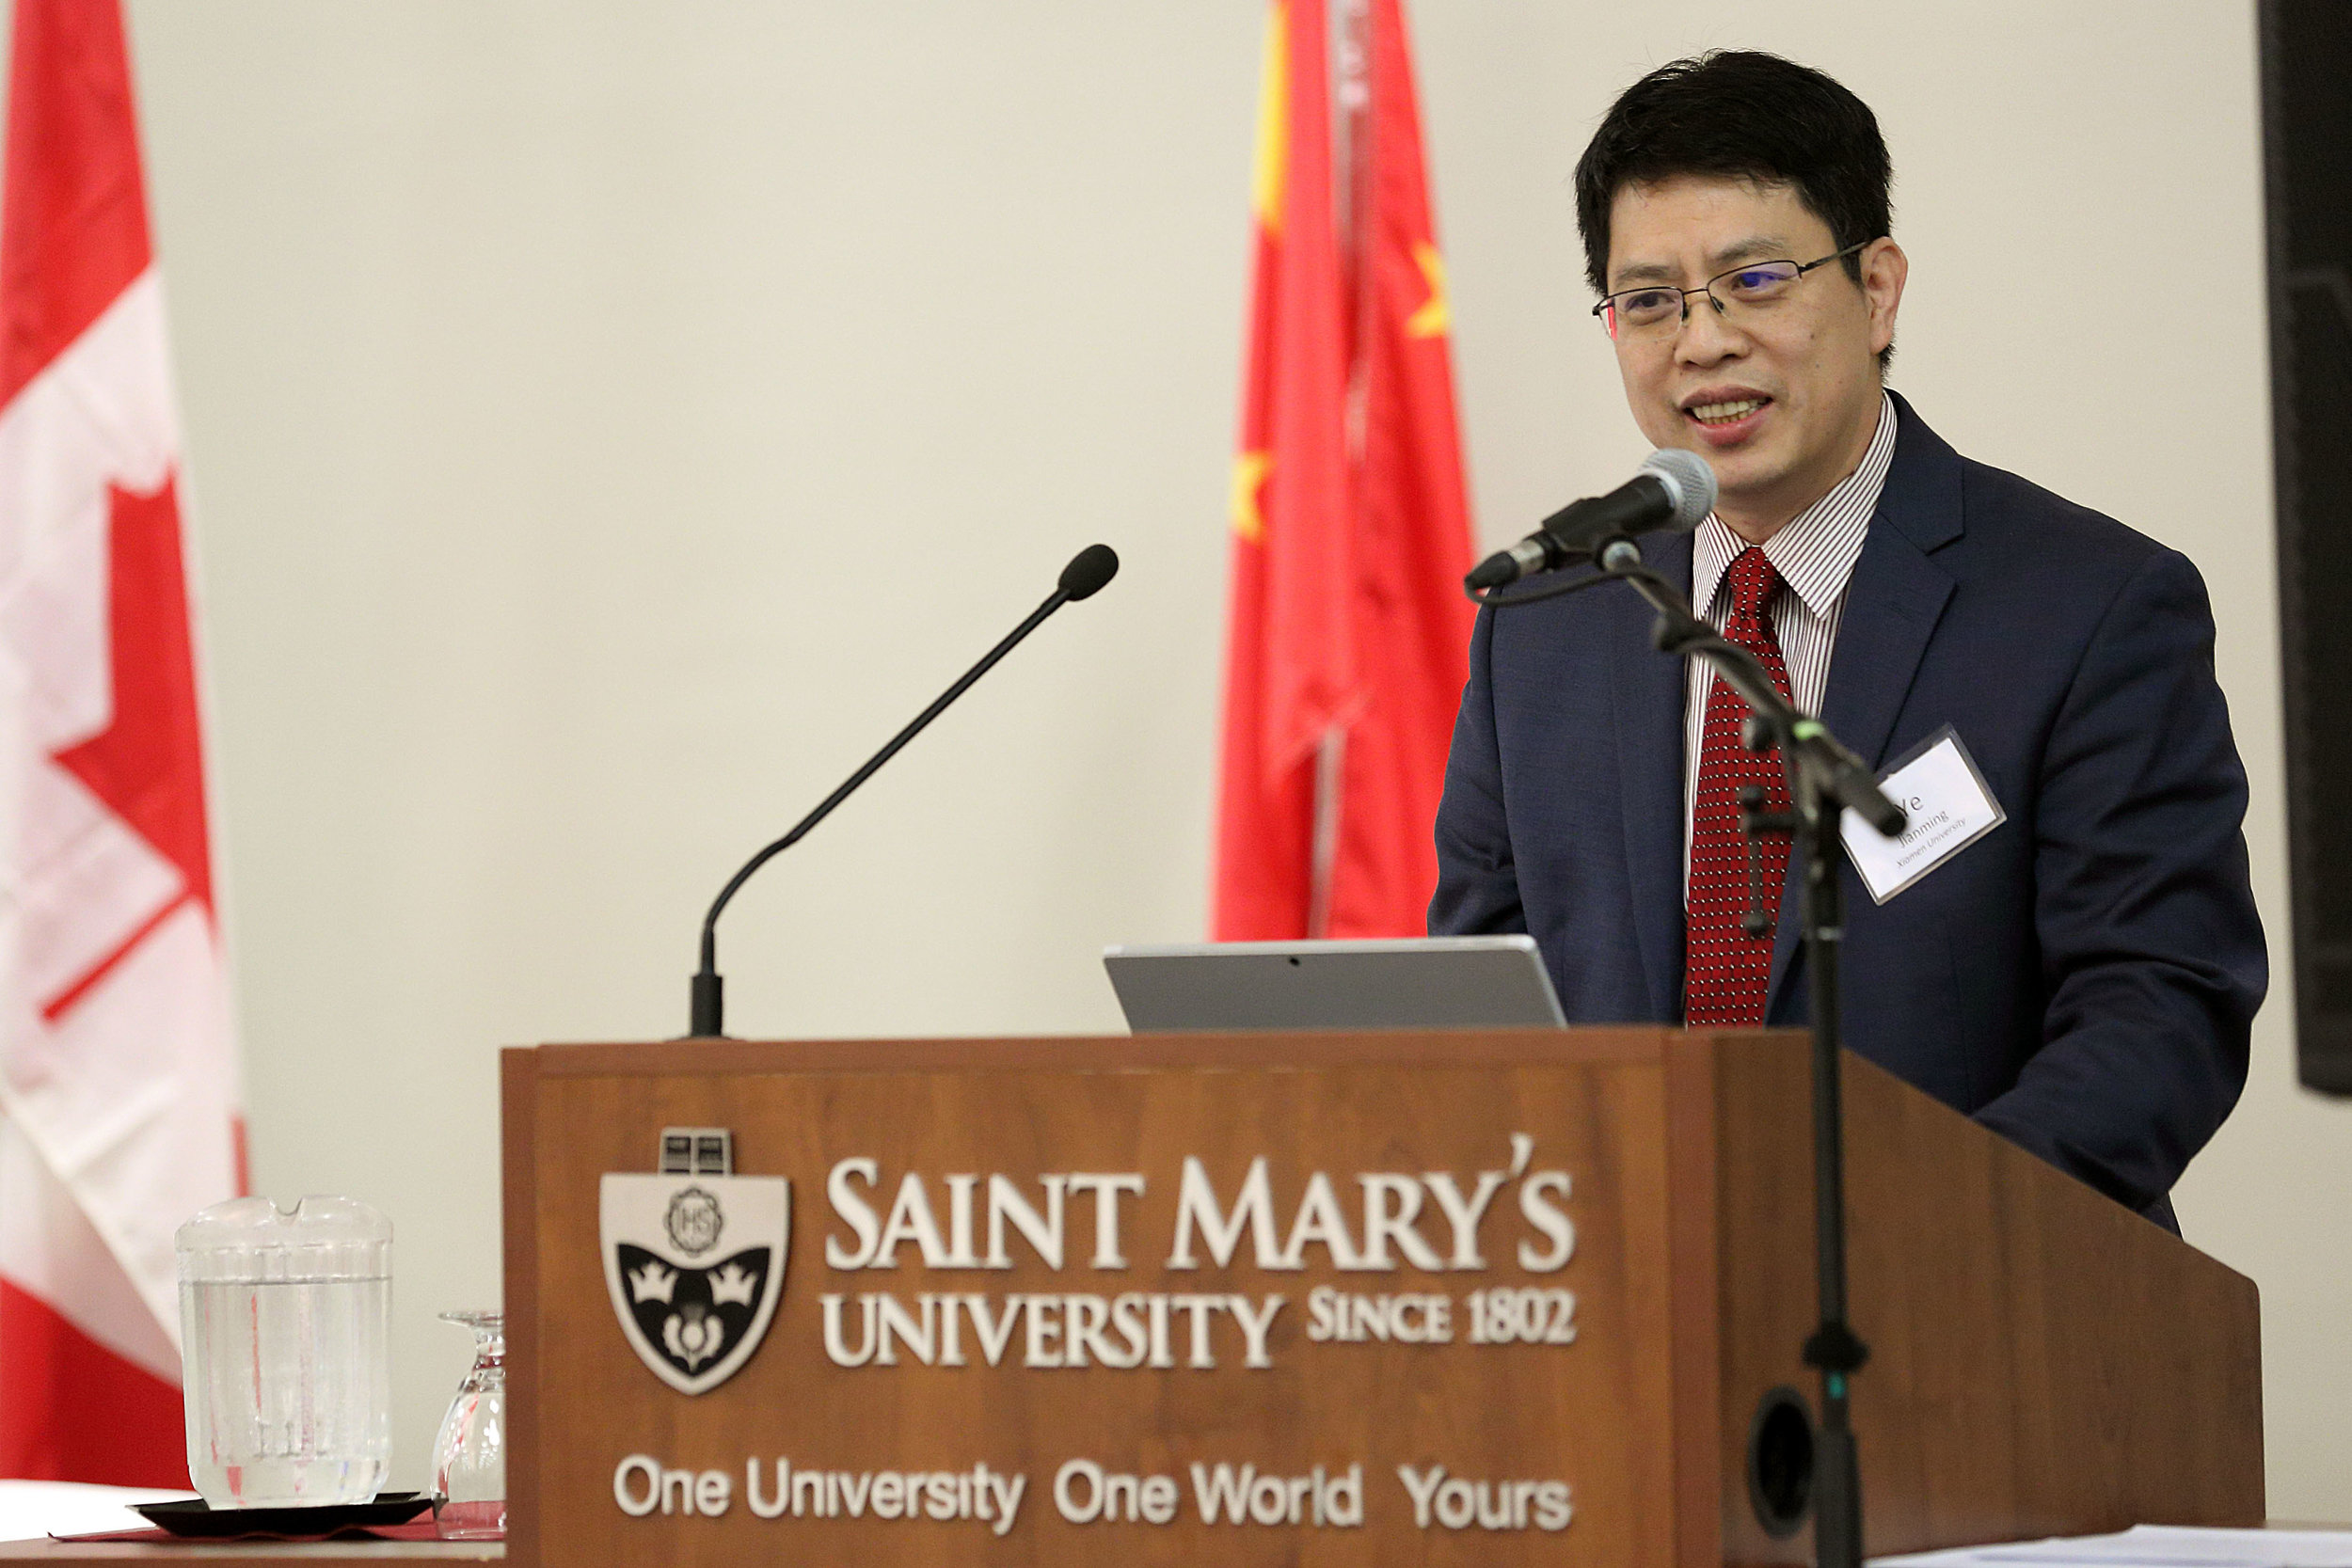 Dr. Ye Jianming, Dean of the School of Management, Xiamen University, China